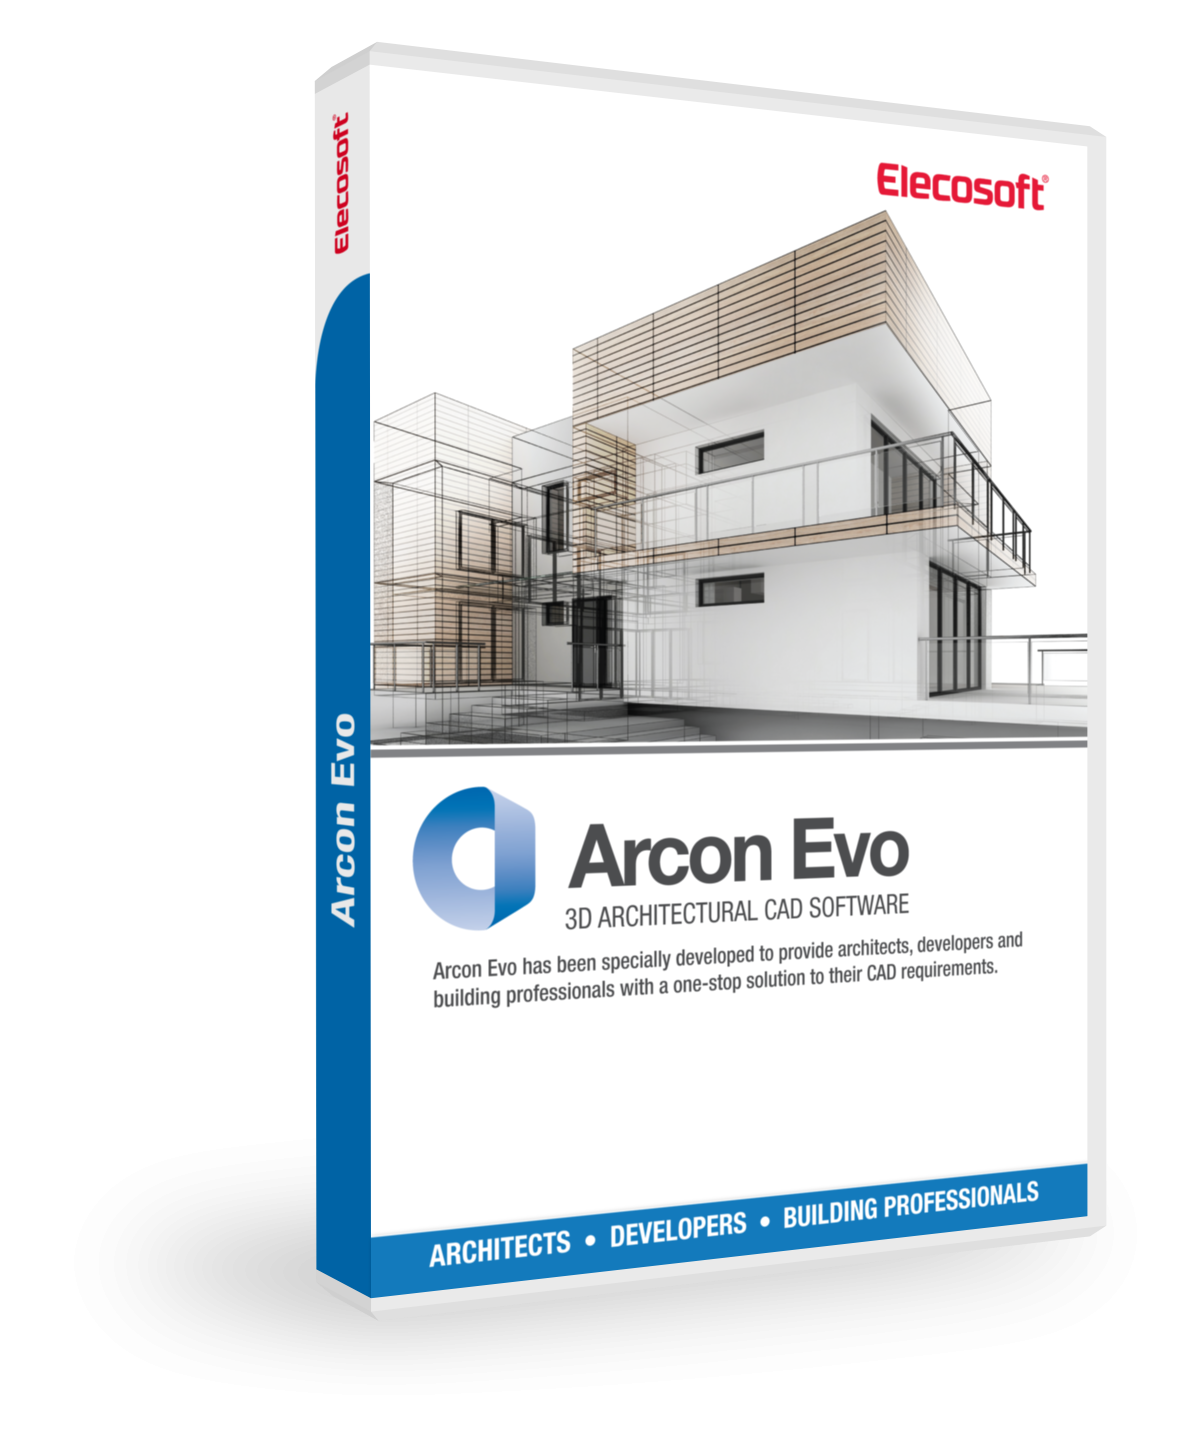 Arcon Evo 3d Architectural House Design Software